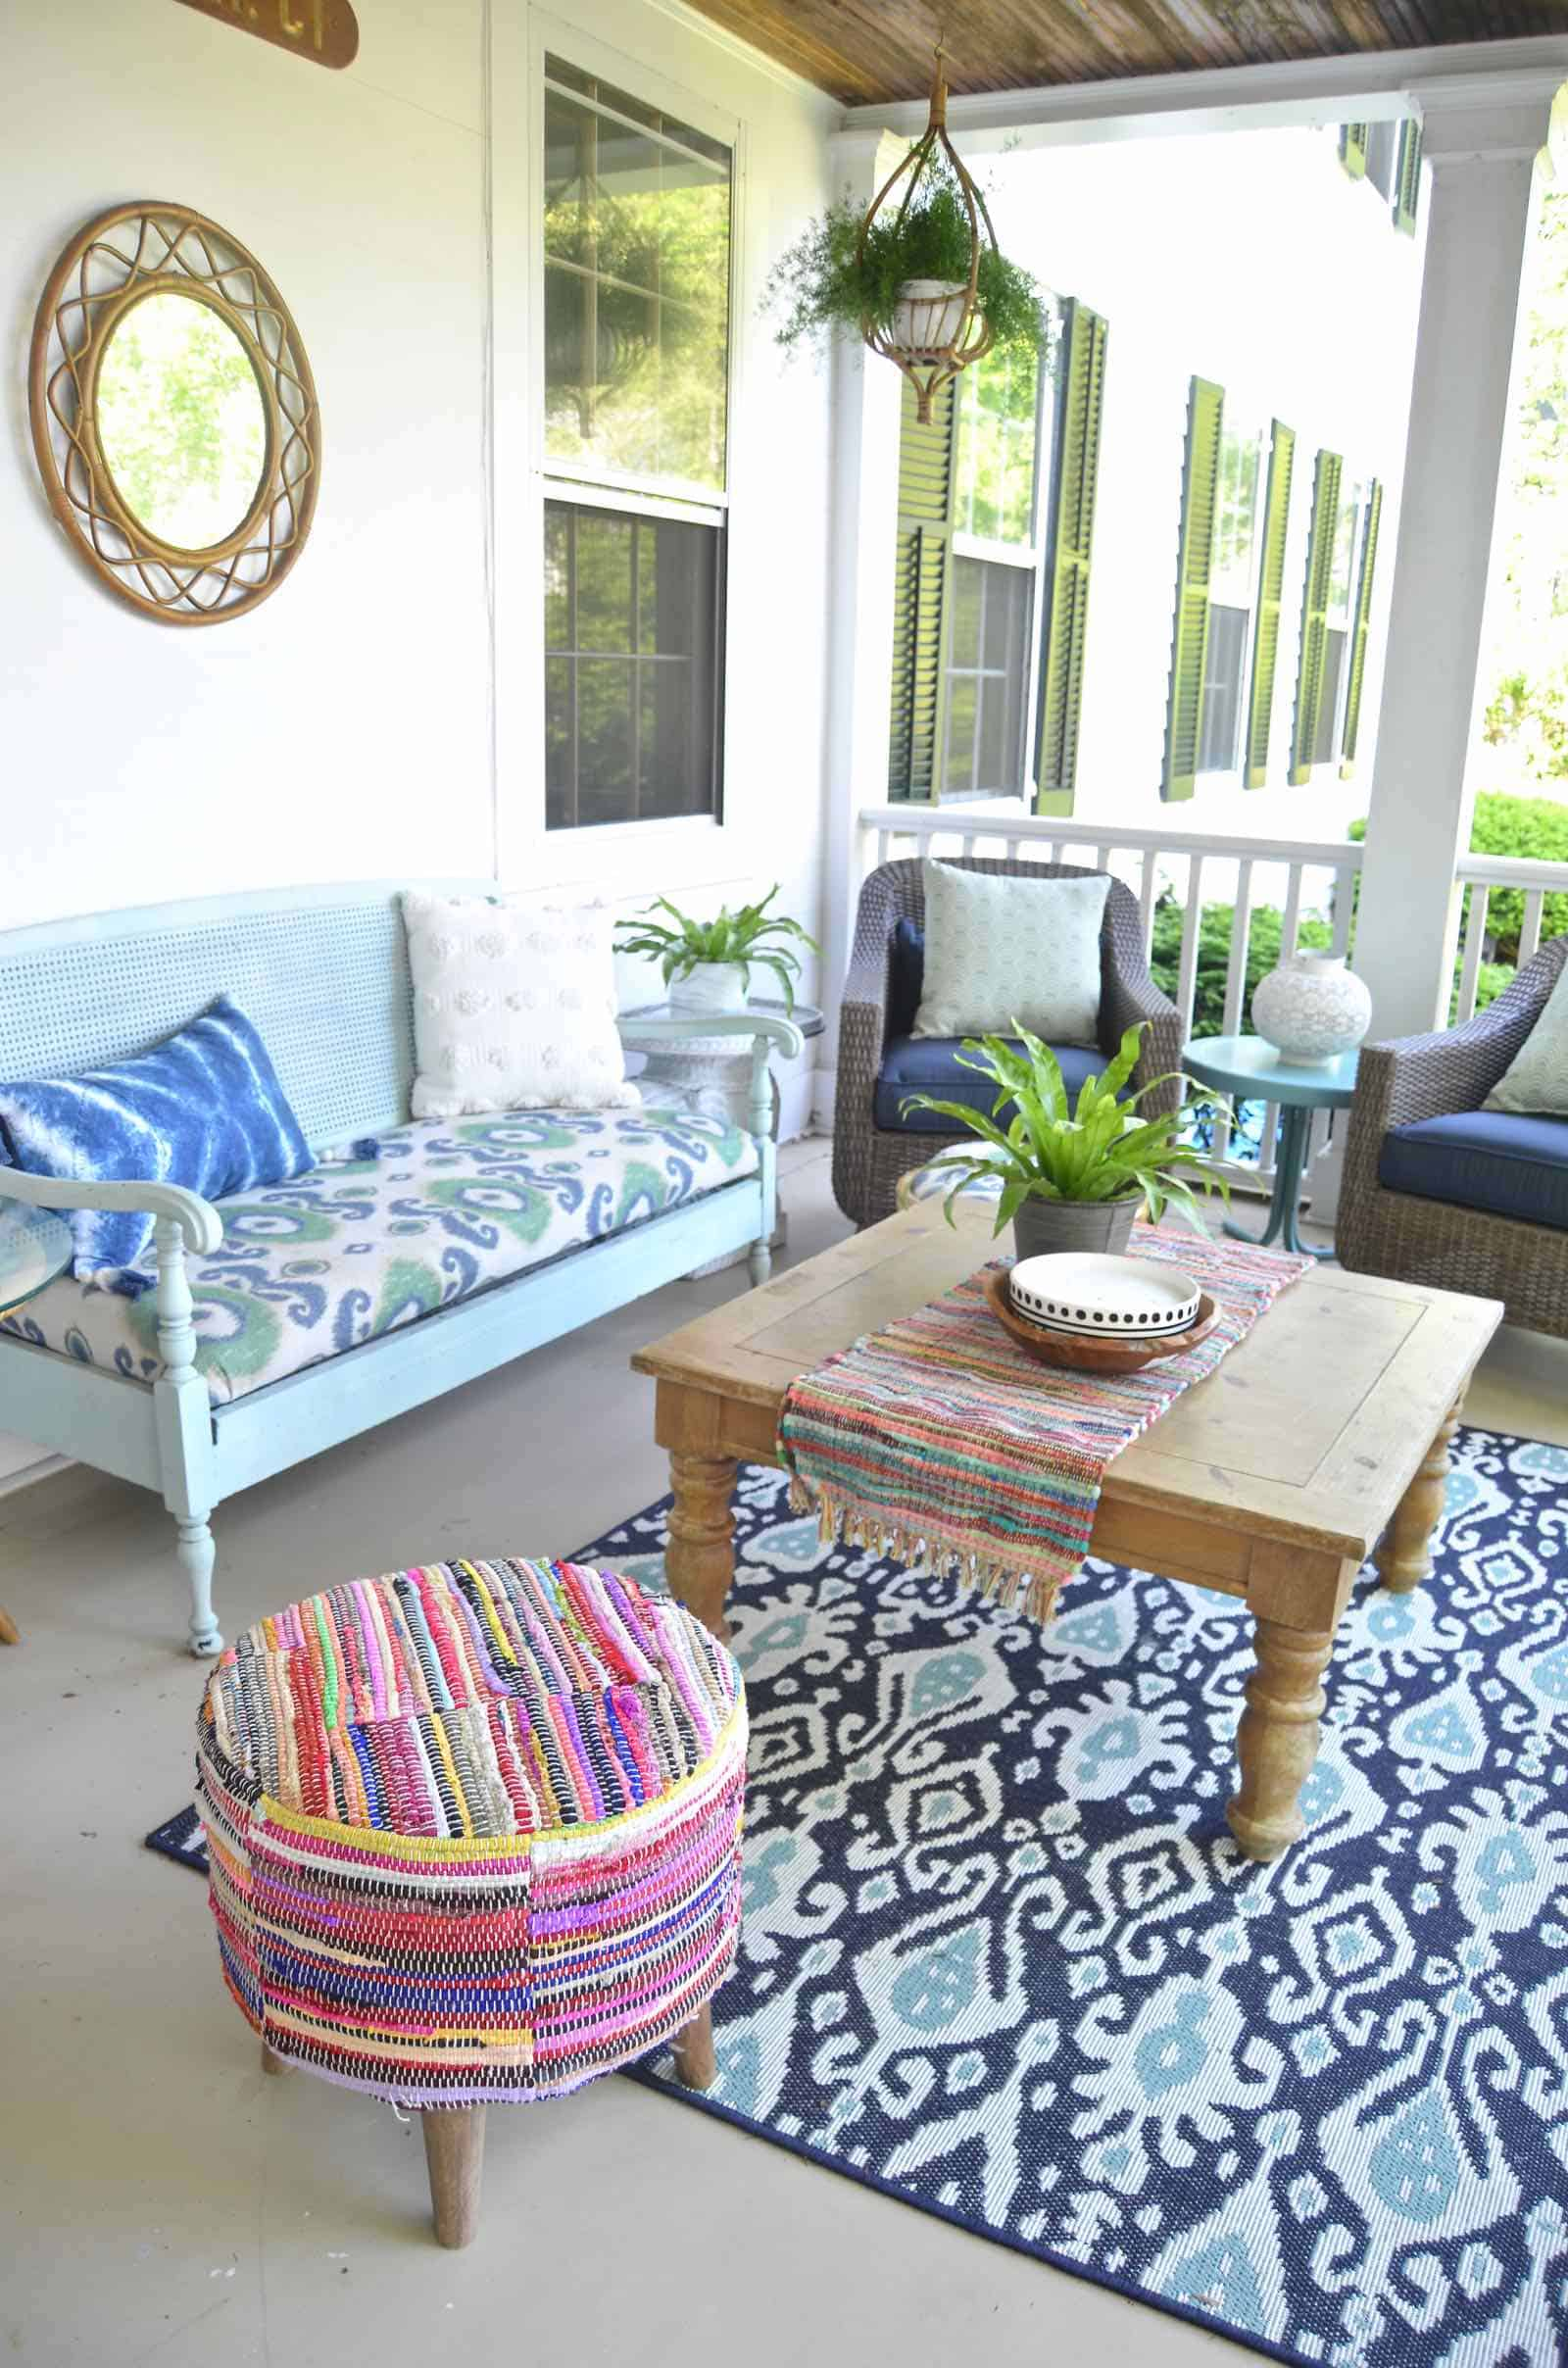 Summer back porch refresh... new seating, new accessories, new season!